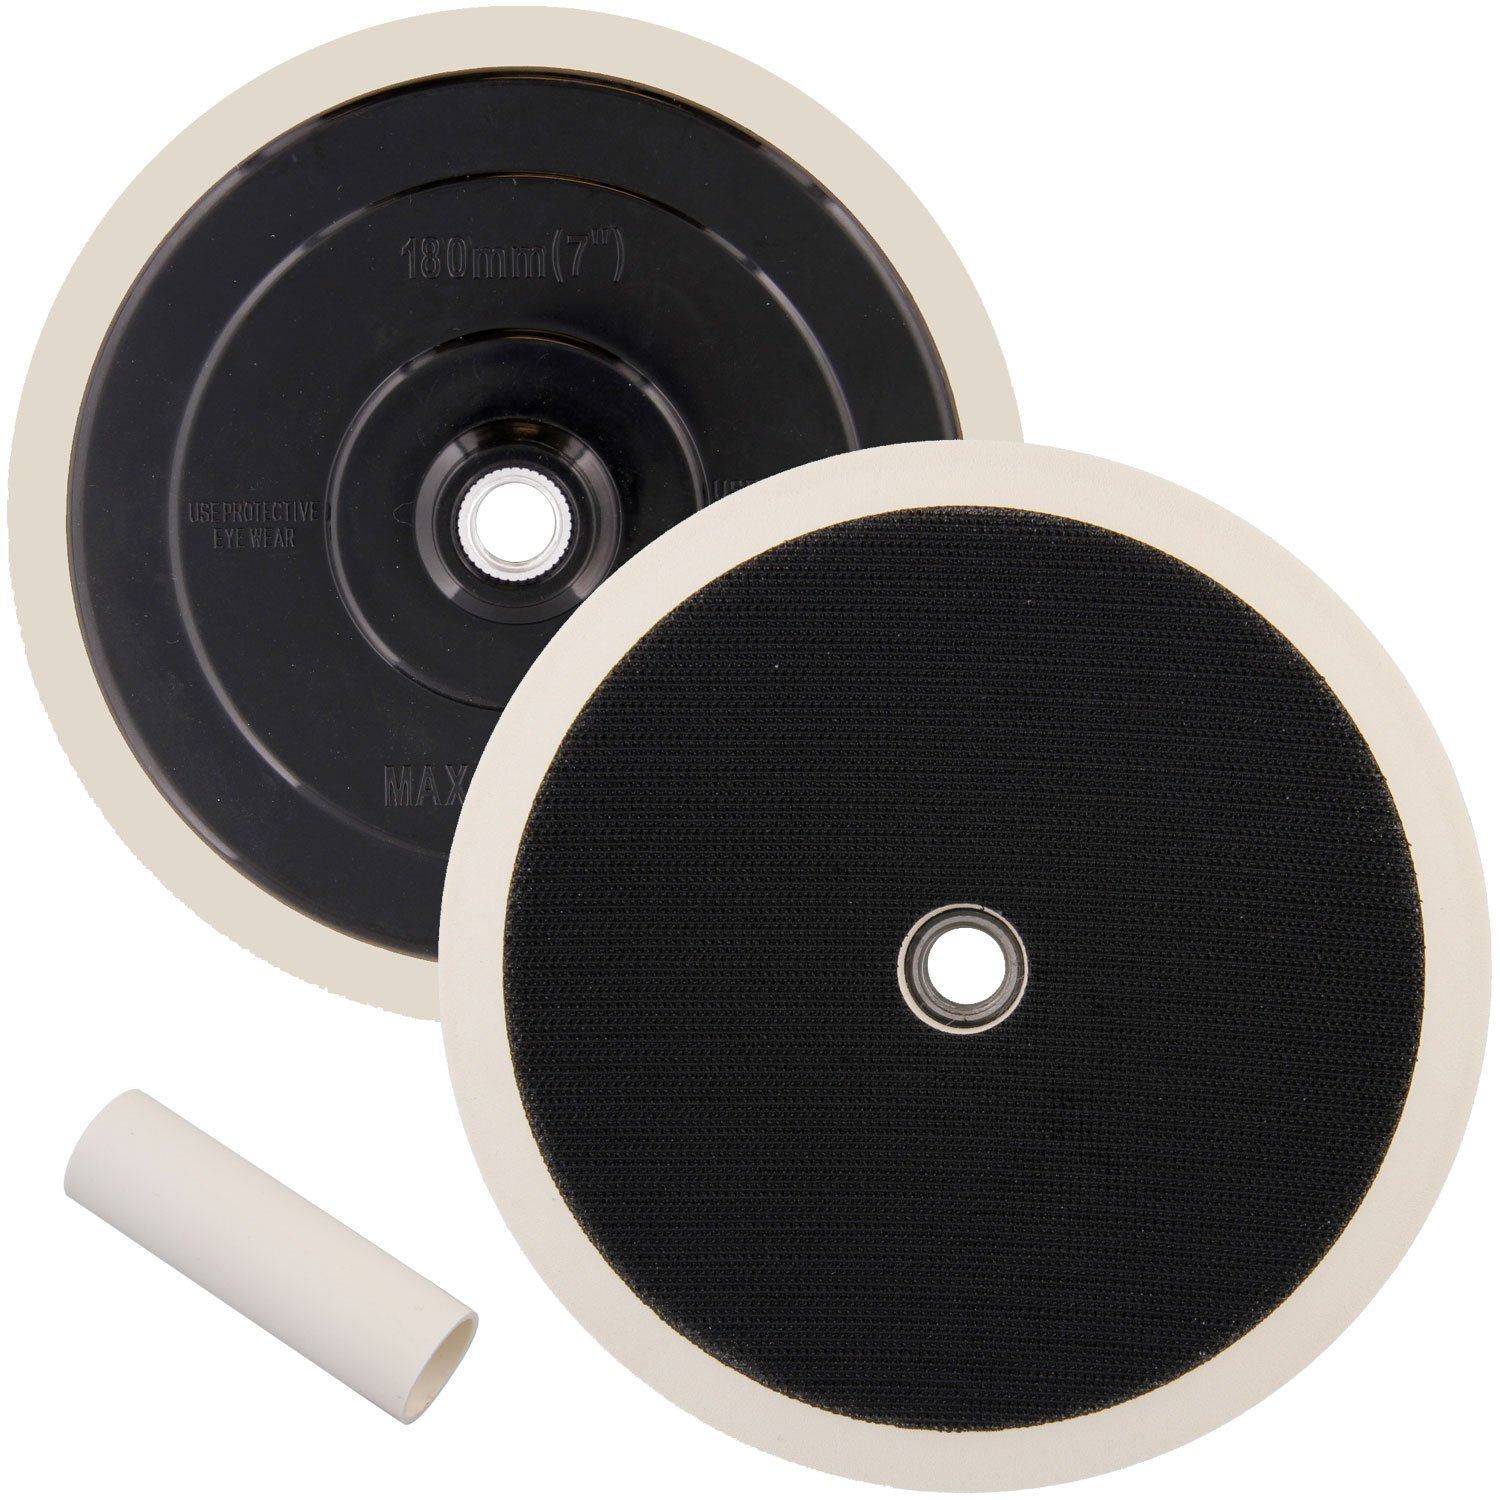 TCP Global Brand 7' Grip Mount Hook & Loop Universal Polisher Buffer Backing Plate Pad - Attach Foam Wool Buff Polishing Pads 4332949791